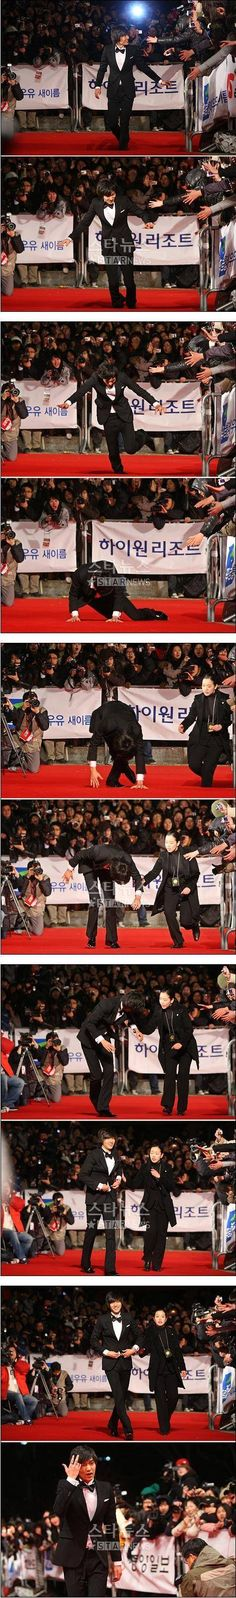 Lee Min Ho gorgeous and uncoordinated:) Just like me! (Wink)